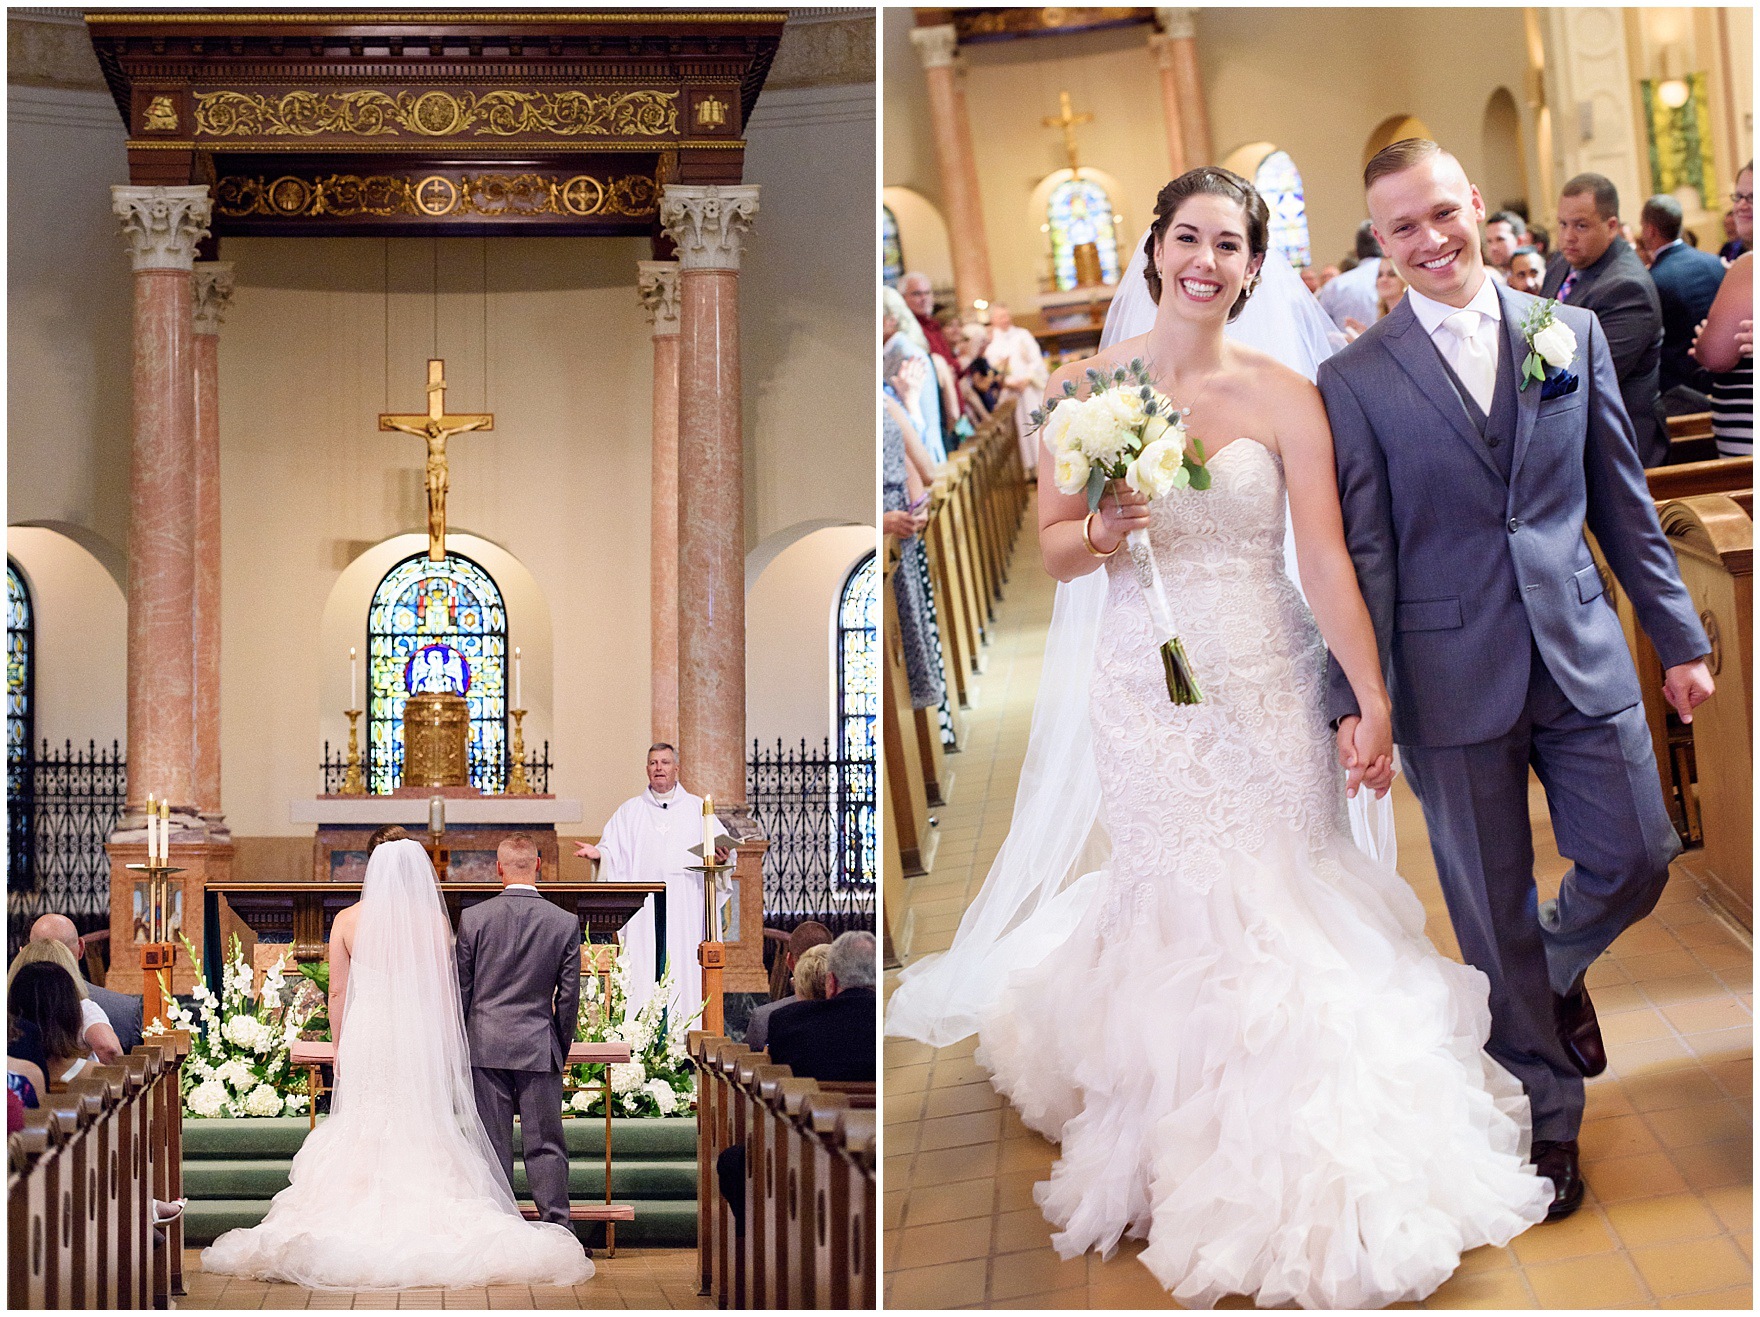 The bride and groom are joyous after tying the knot at their St. Francis Xavier and Brookfield Zoo Chicago wedding.